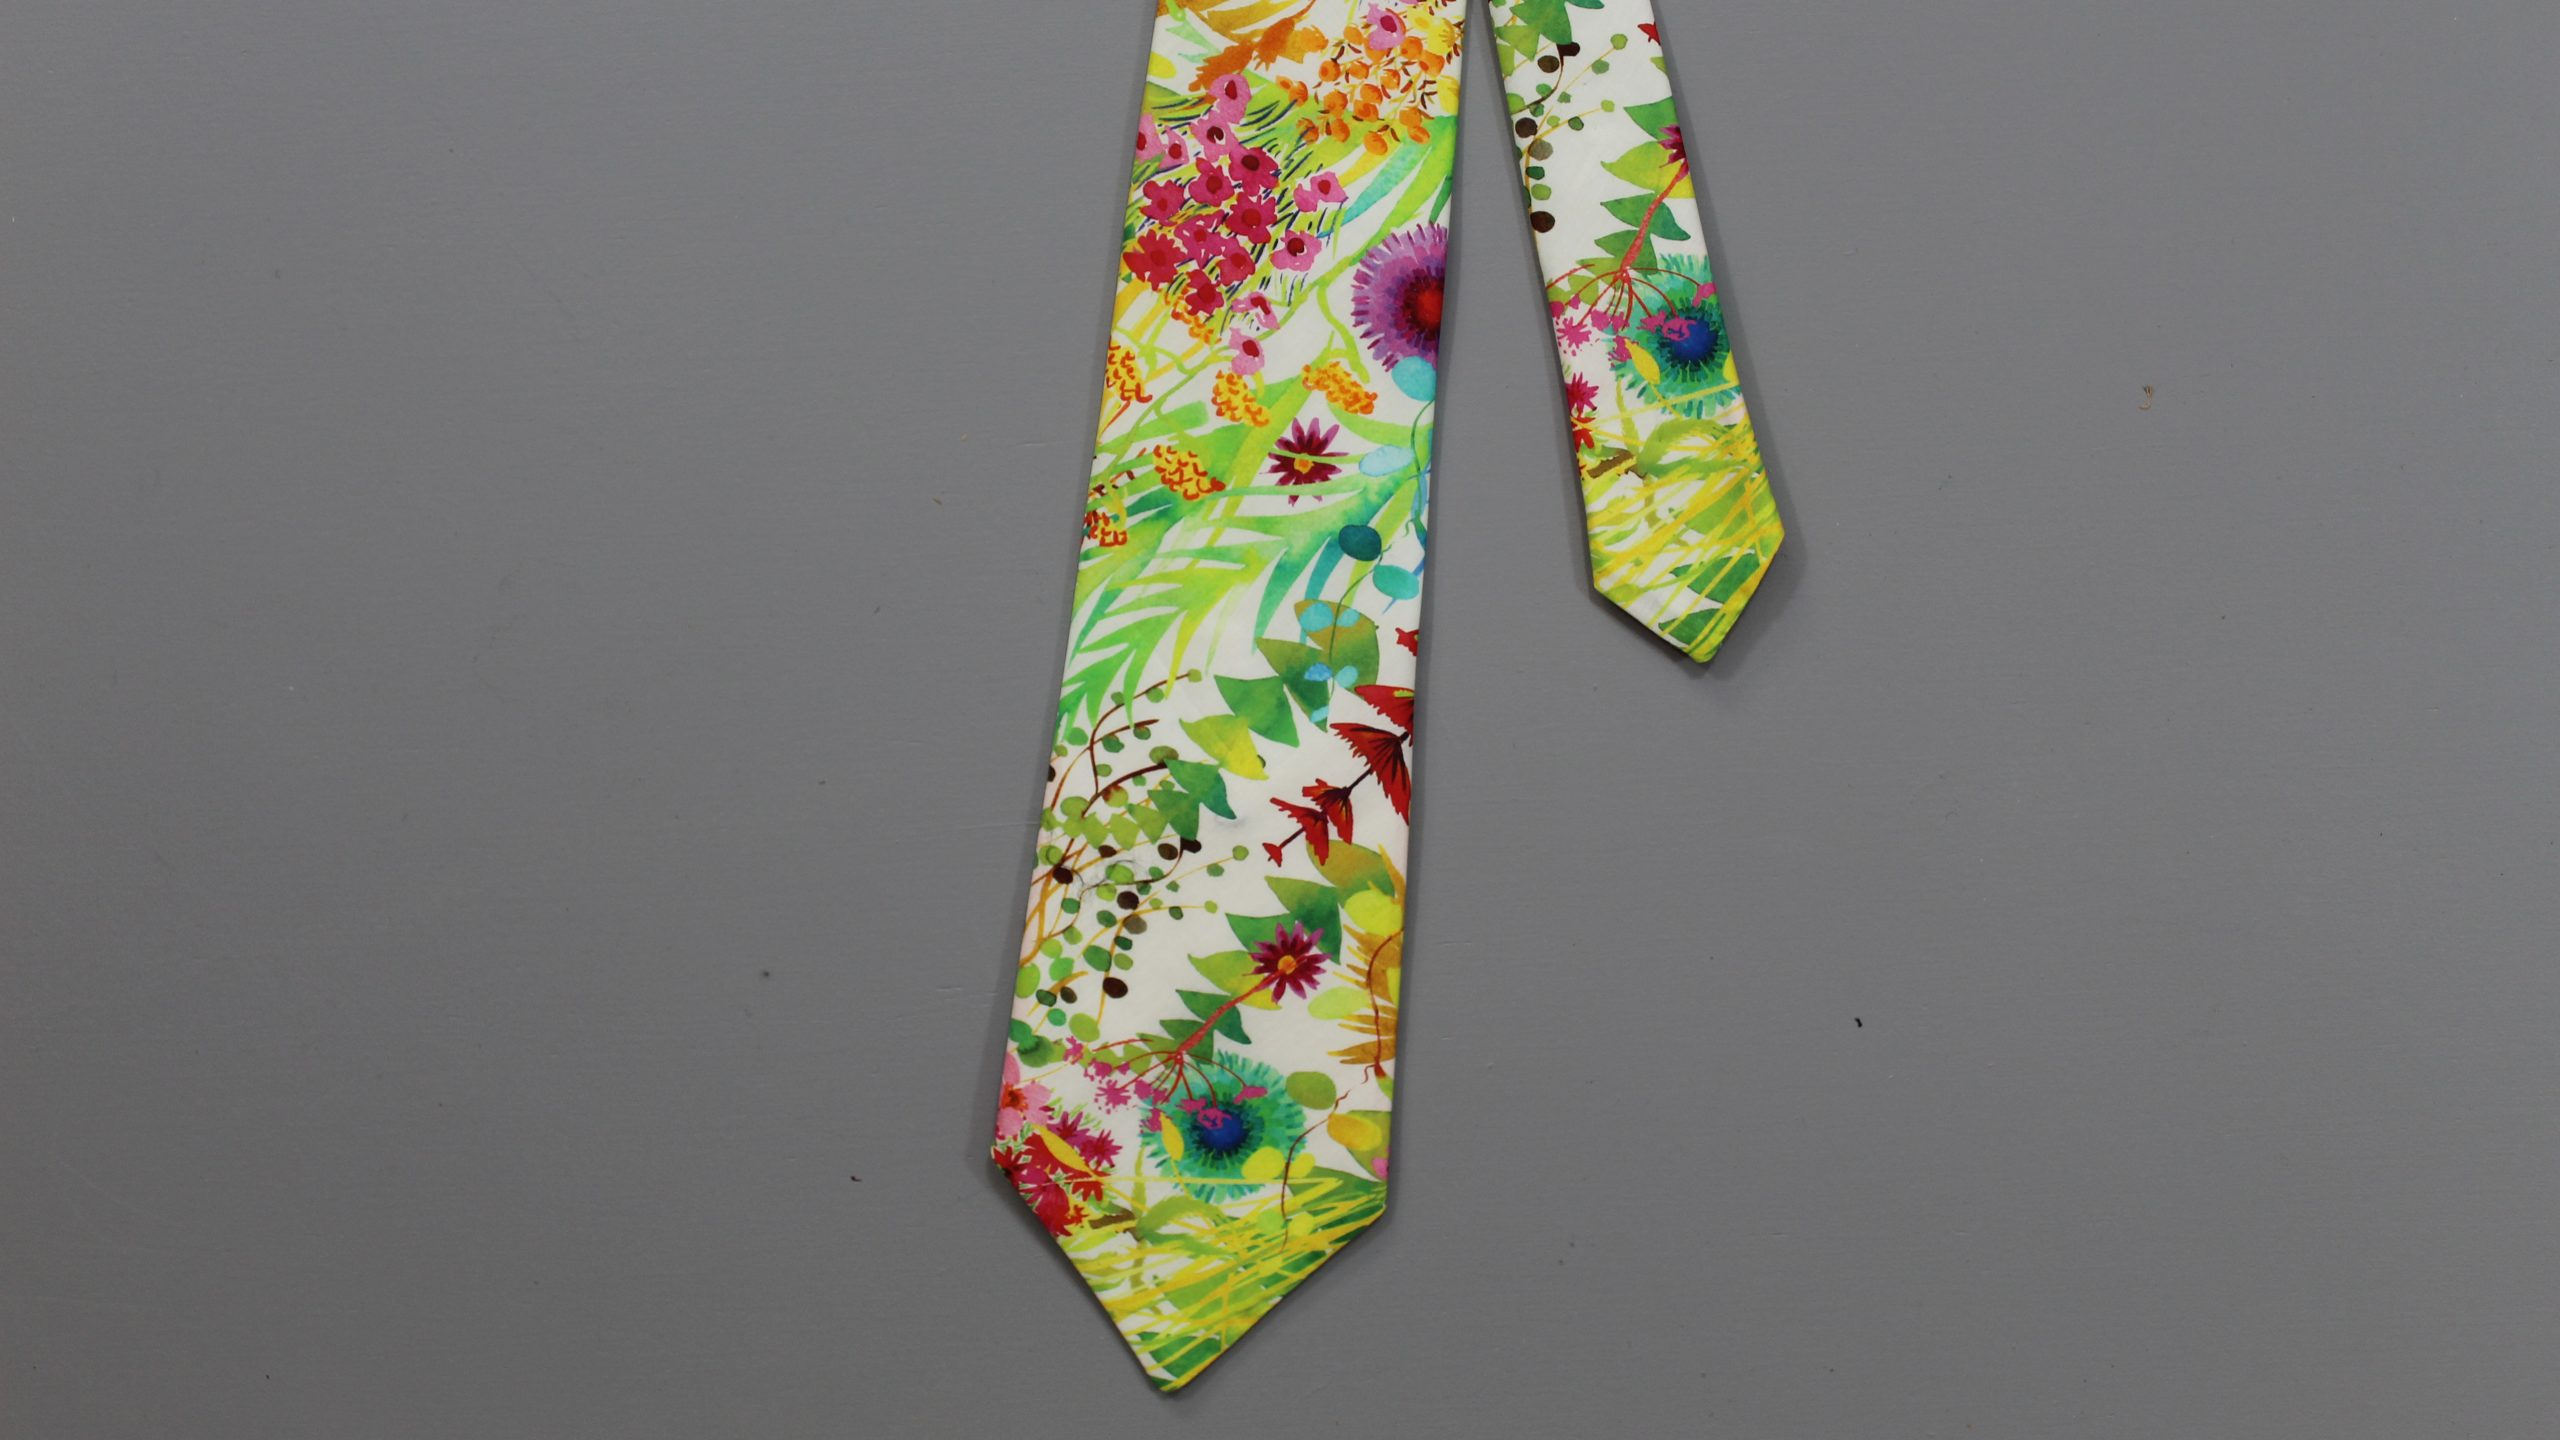 Finished flower tie